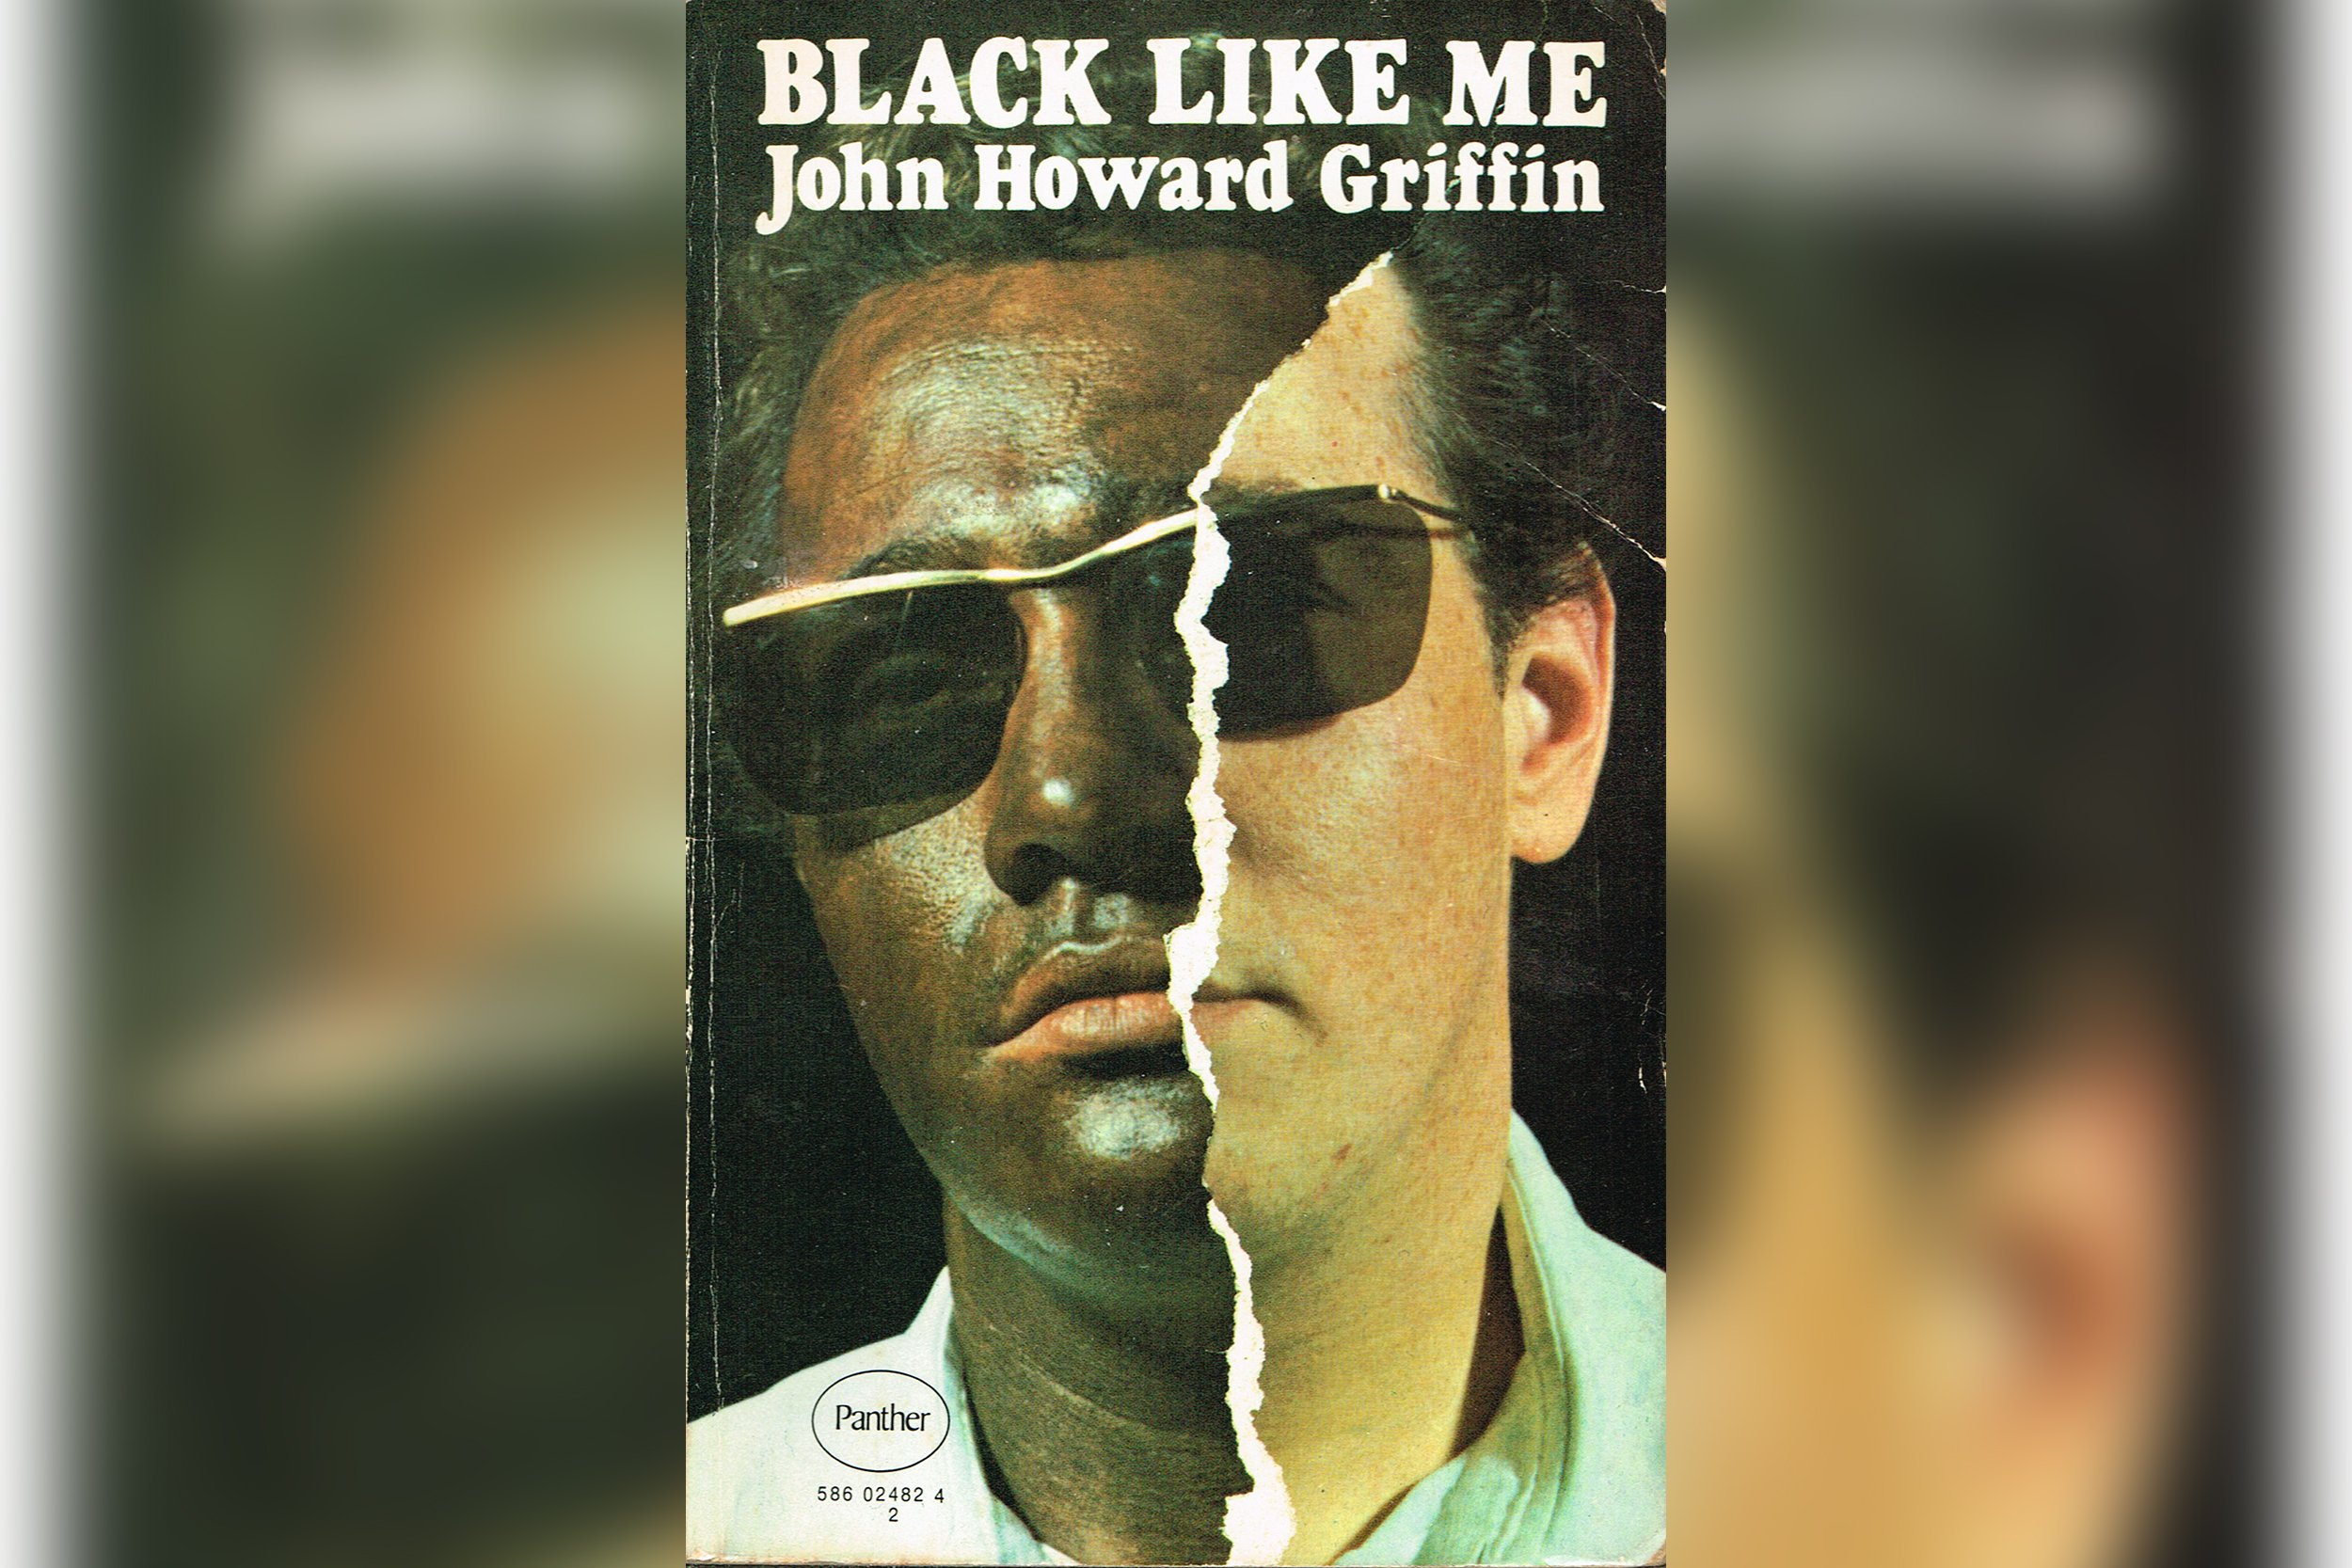 black like me by john howard griffin essay John howard griffin did indeed experience the hardships of being black in black like me for one, he experienced how difficult it was to find what most of us take for granted: a bathroom he.